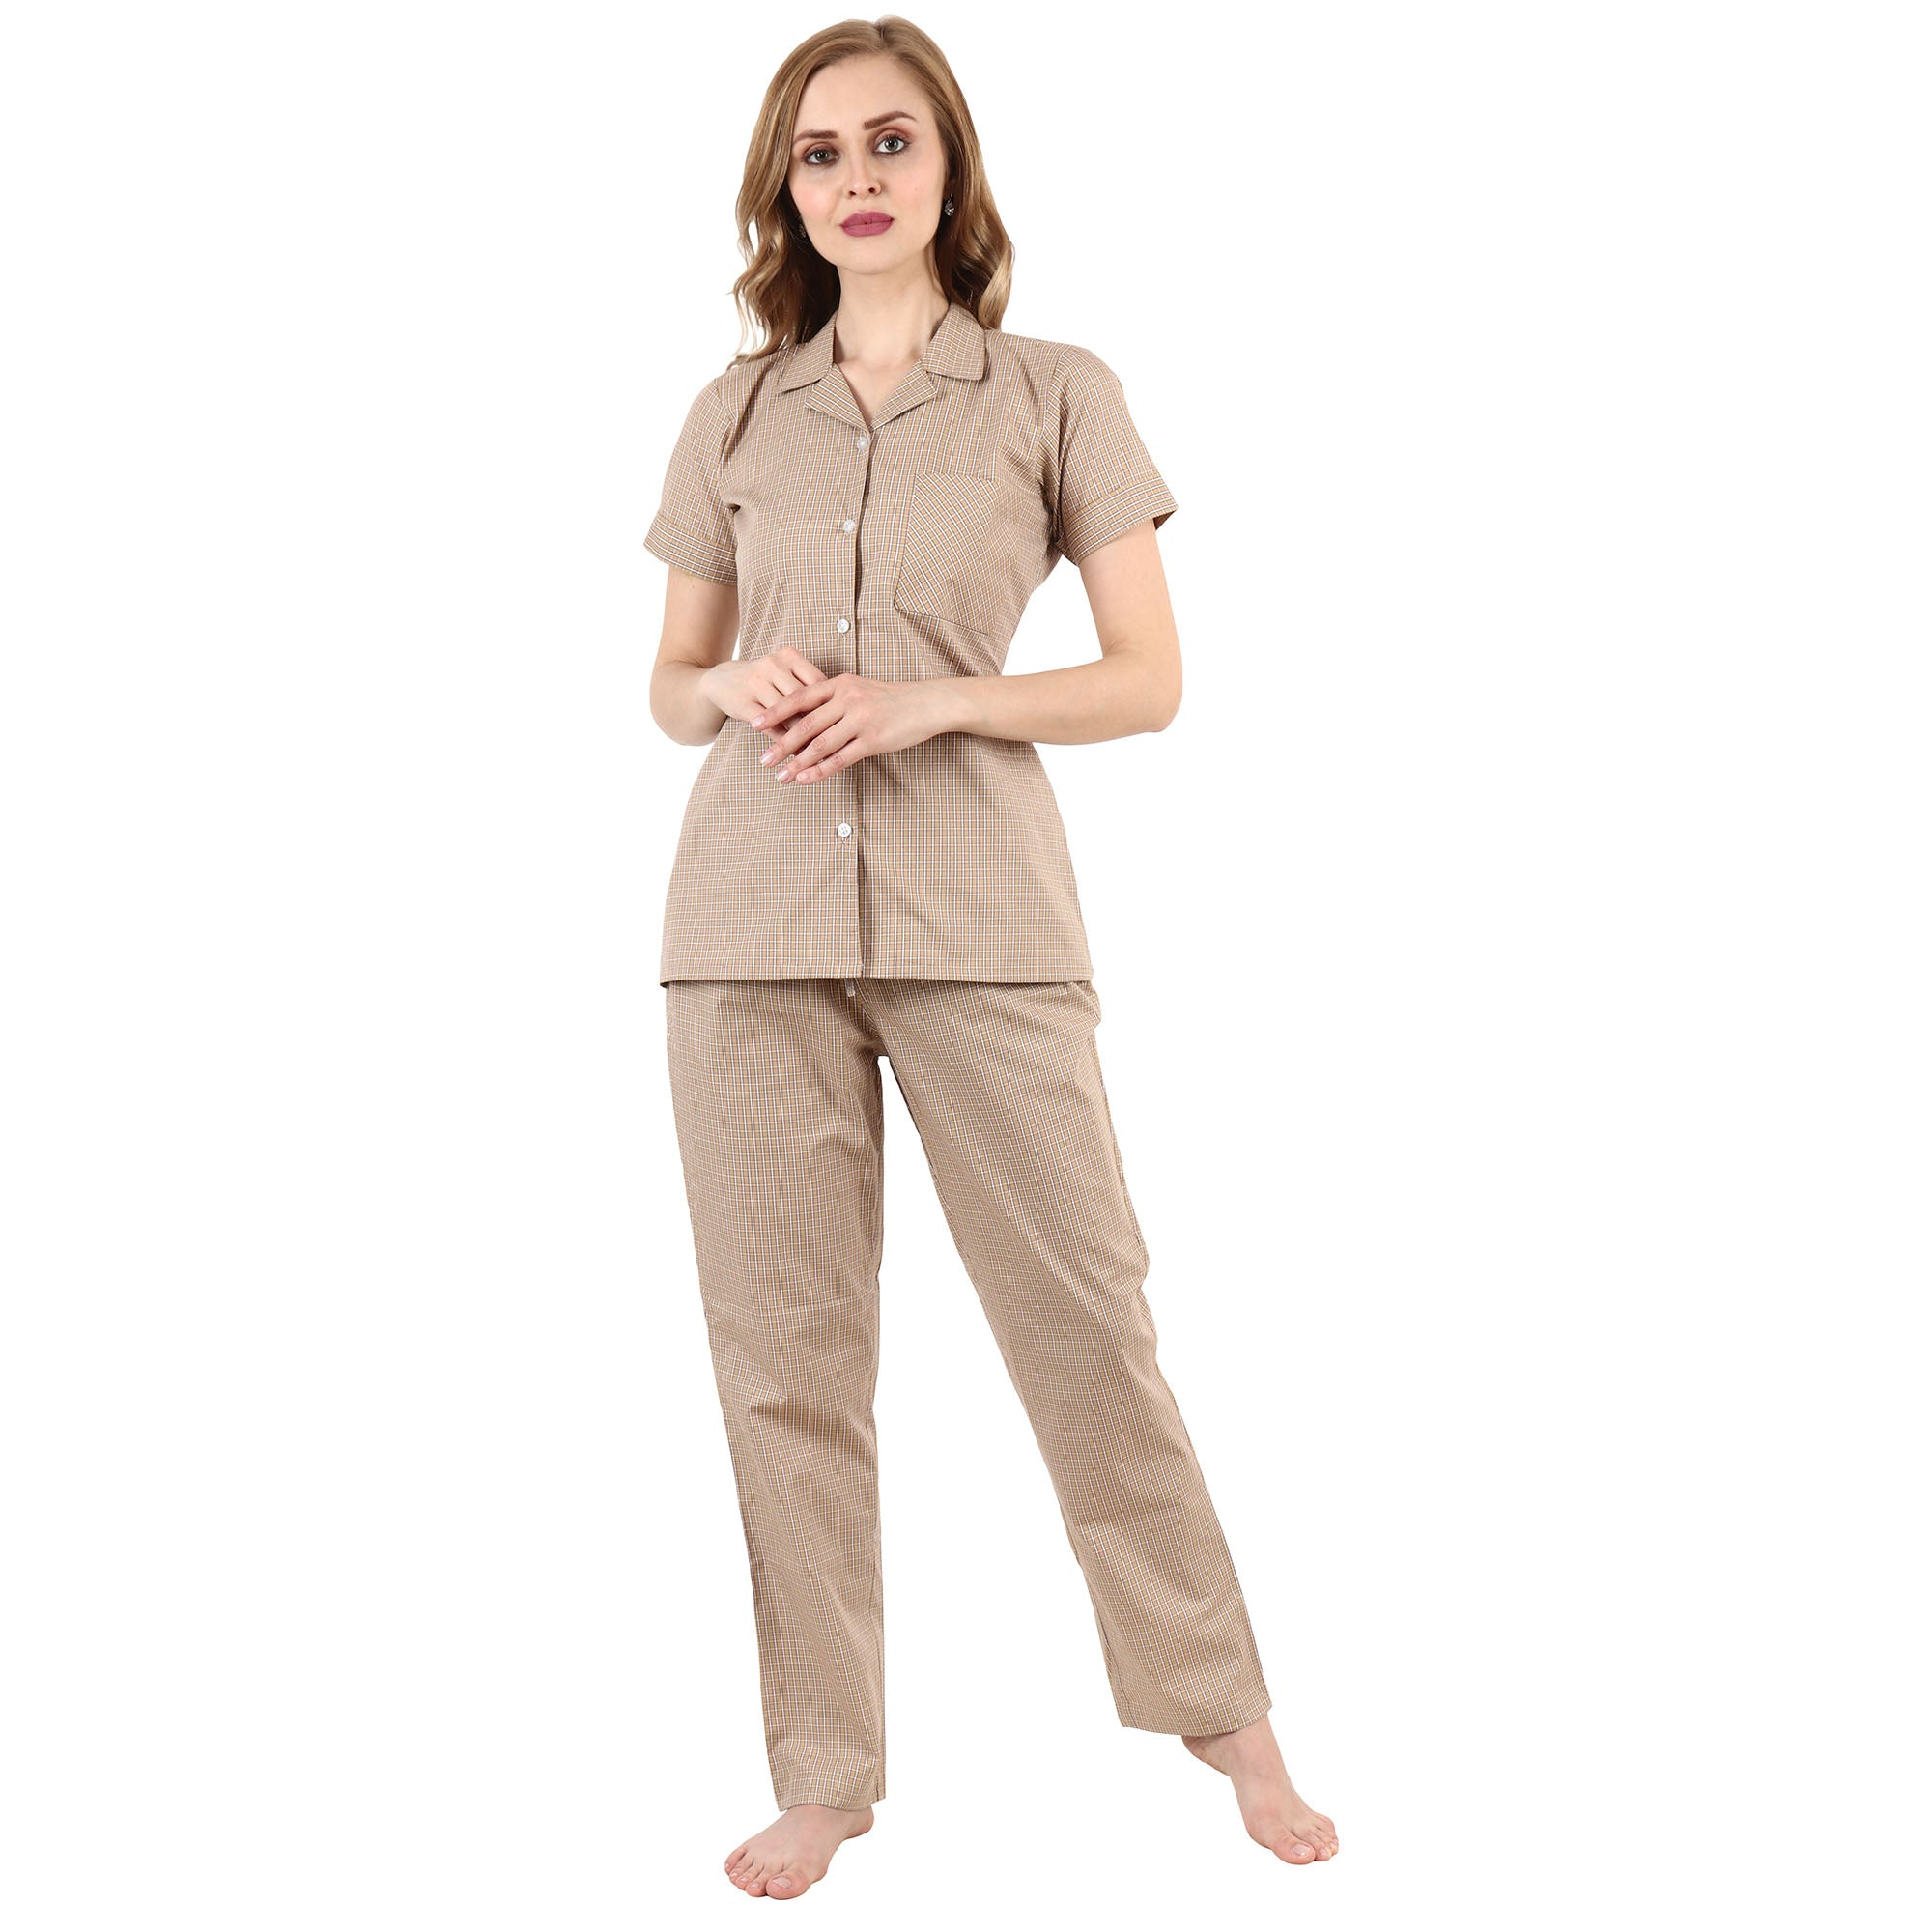 all size, all sizes night suits, apella, best online store, Brown, cotton night suit, half sleeve, lounge wear suits, nigt suits online, notched collar, plus size, plus size night suits, poly